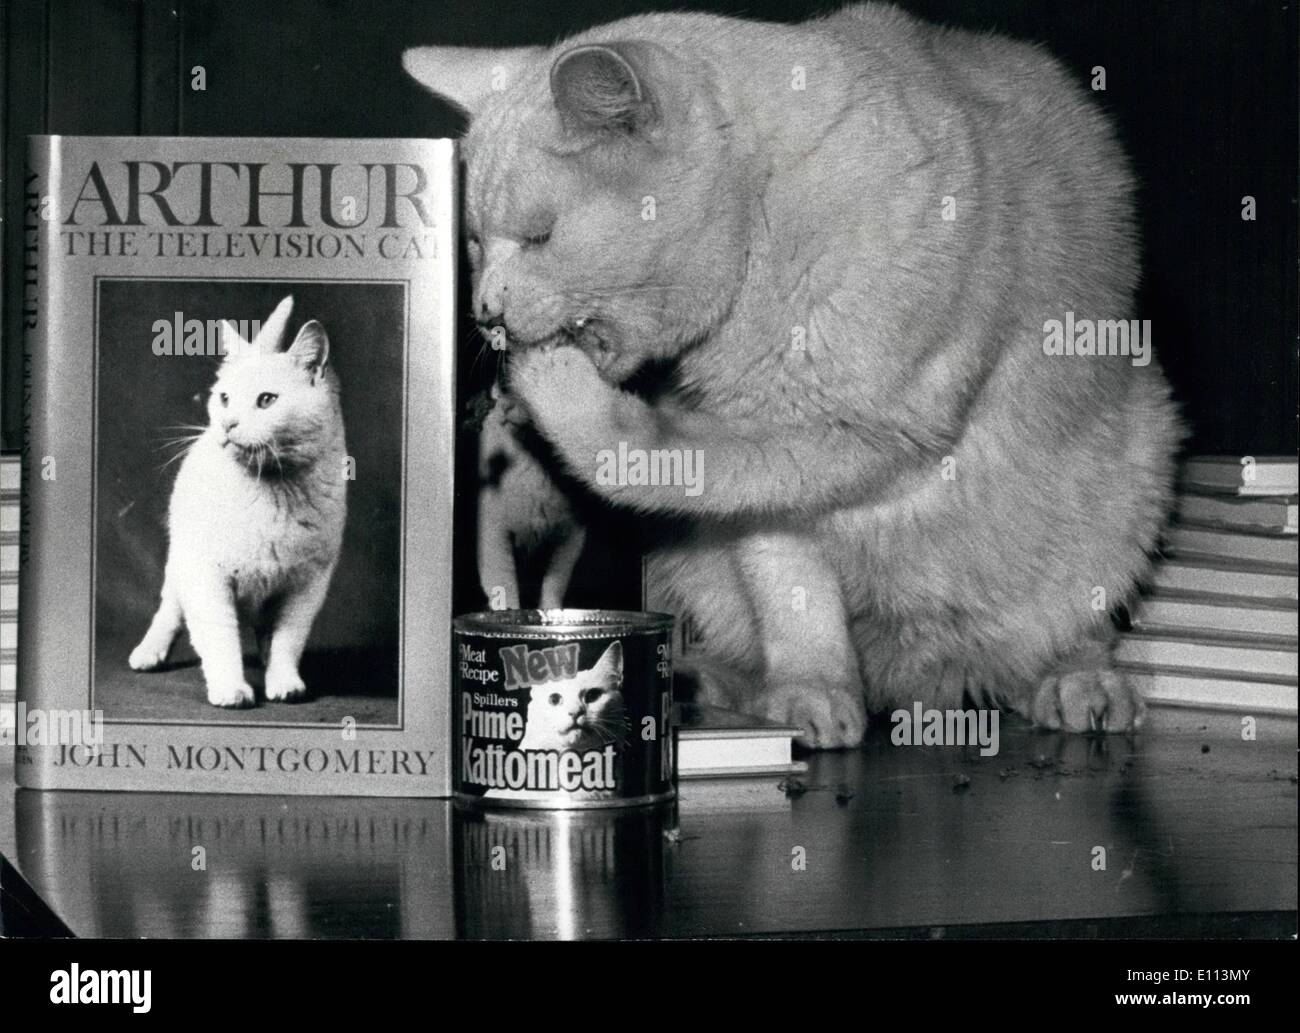 Oct. 10, 1975 - Arthur the T.V. Cat has a book published: Arthur the television cat today added one more accomplishment to his story of success. He has just had his life story published and today he was available to ''autograph'' it. The book wirtten by John Montgomer covers the story of the cat that that has been the star of more than 30 t.v. films and also the subjects on man a Tshirt and towel, he also has the dubios honor of being the victim of a kidnapping - Stock Image